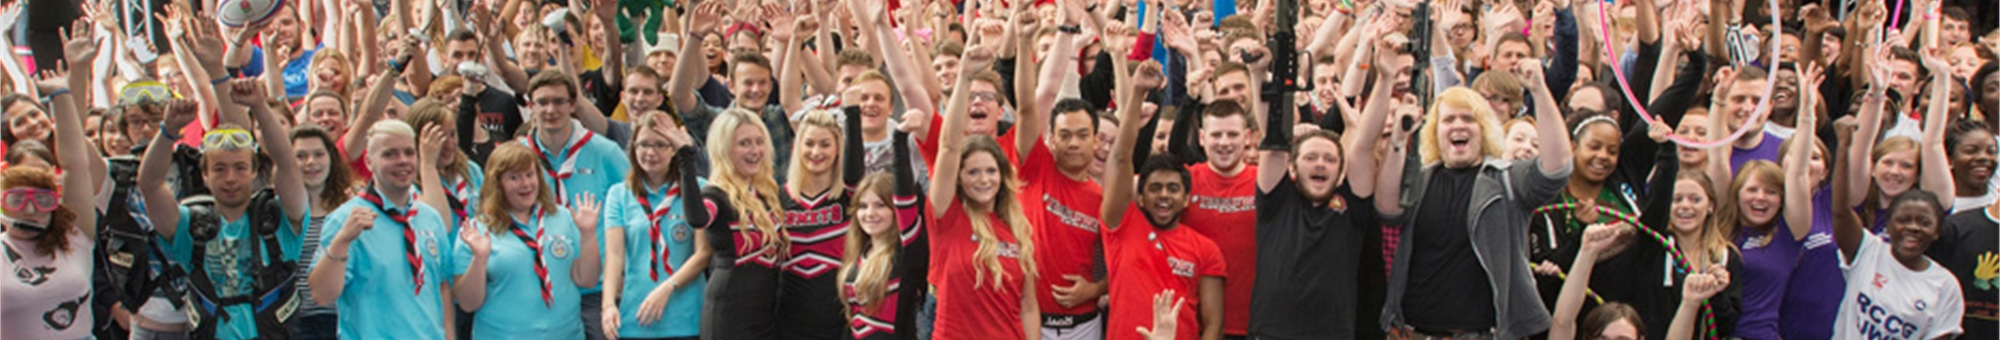 Join in and find something new to get involved in with our Sports, Societies, Fundraising opportunities and more!